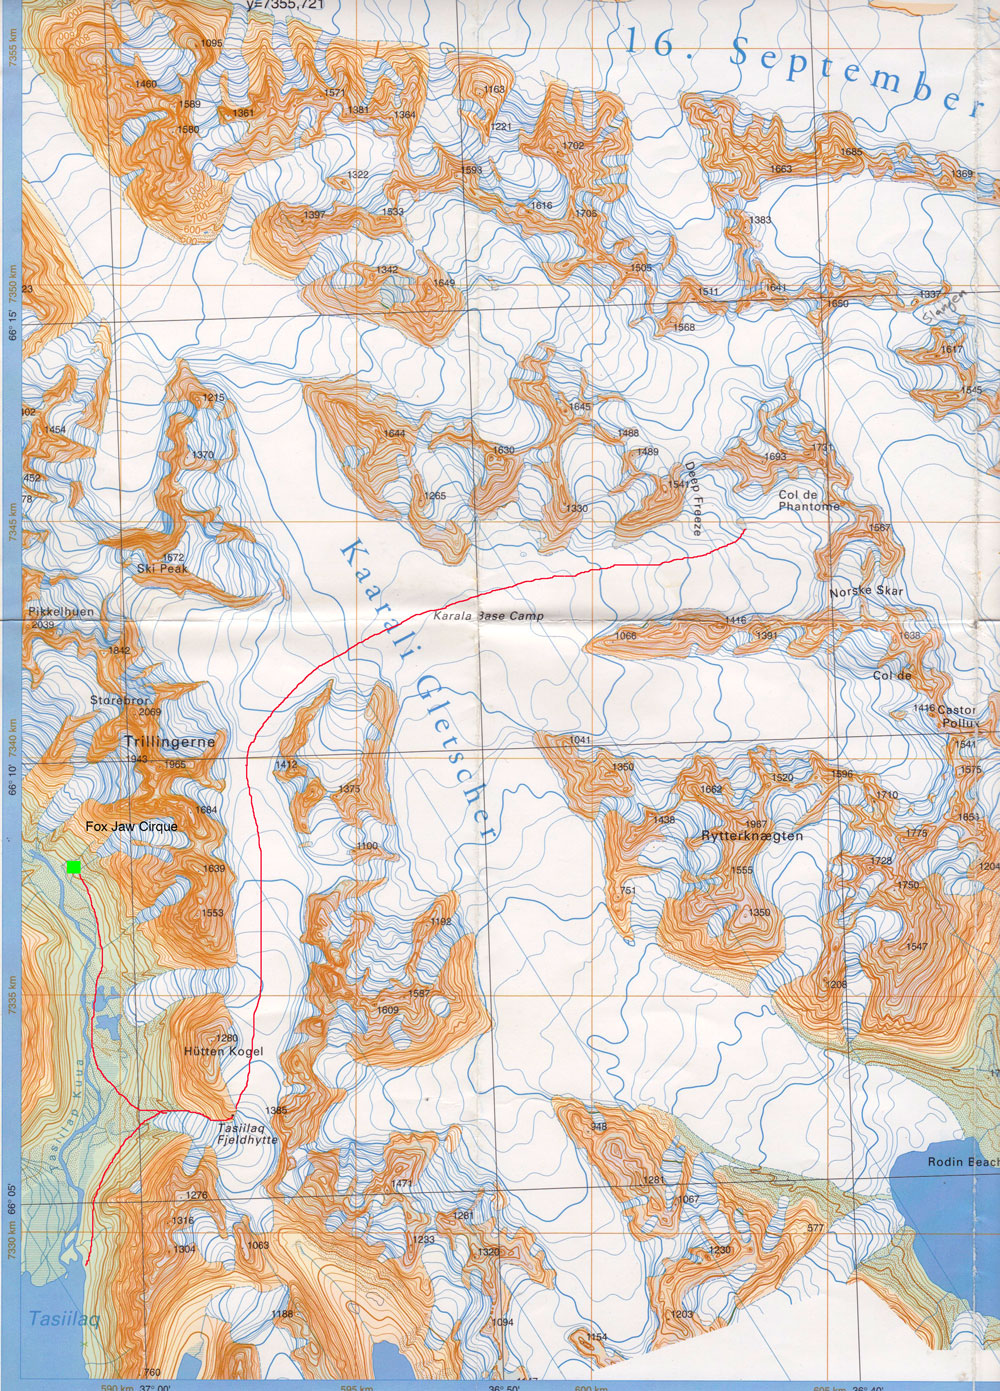 The red line shows our hiking route up to the Tasiilaq Fjeldhytte, then by ski across the Kaarali Glacier to camp below the Col de Phantome, then to the Fox Jaw Cirque with that camp shown in green. (Click on map for larger image)